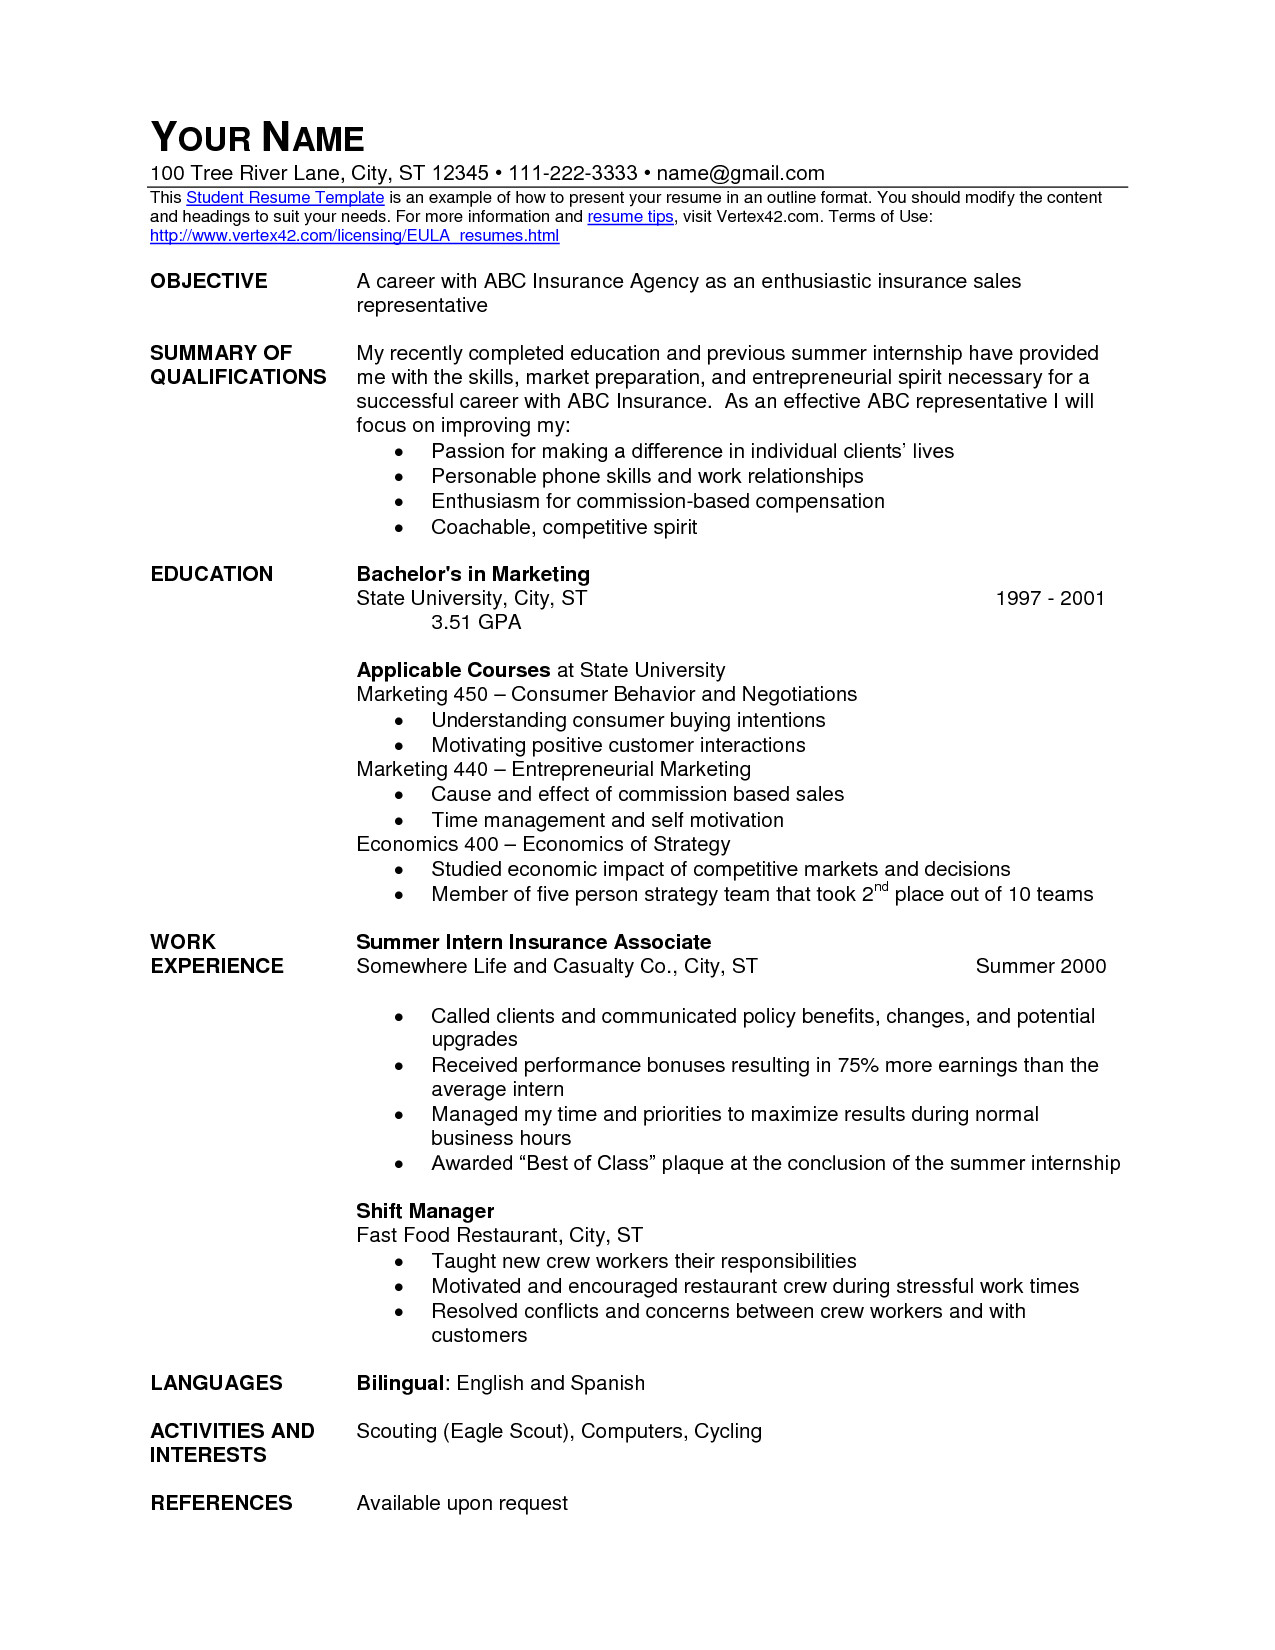 Resume Objective for Fast Food - Entrepreneur Job Description for Resume Popular Fast Food Resume